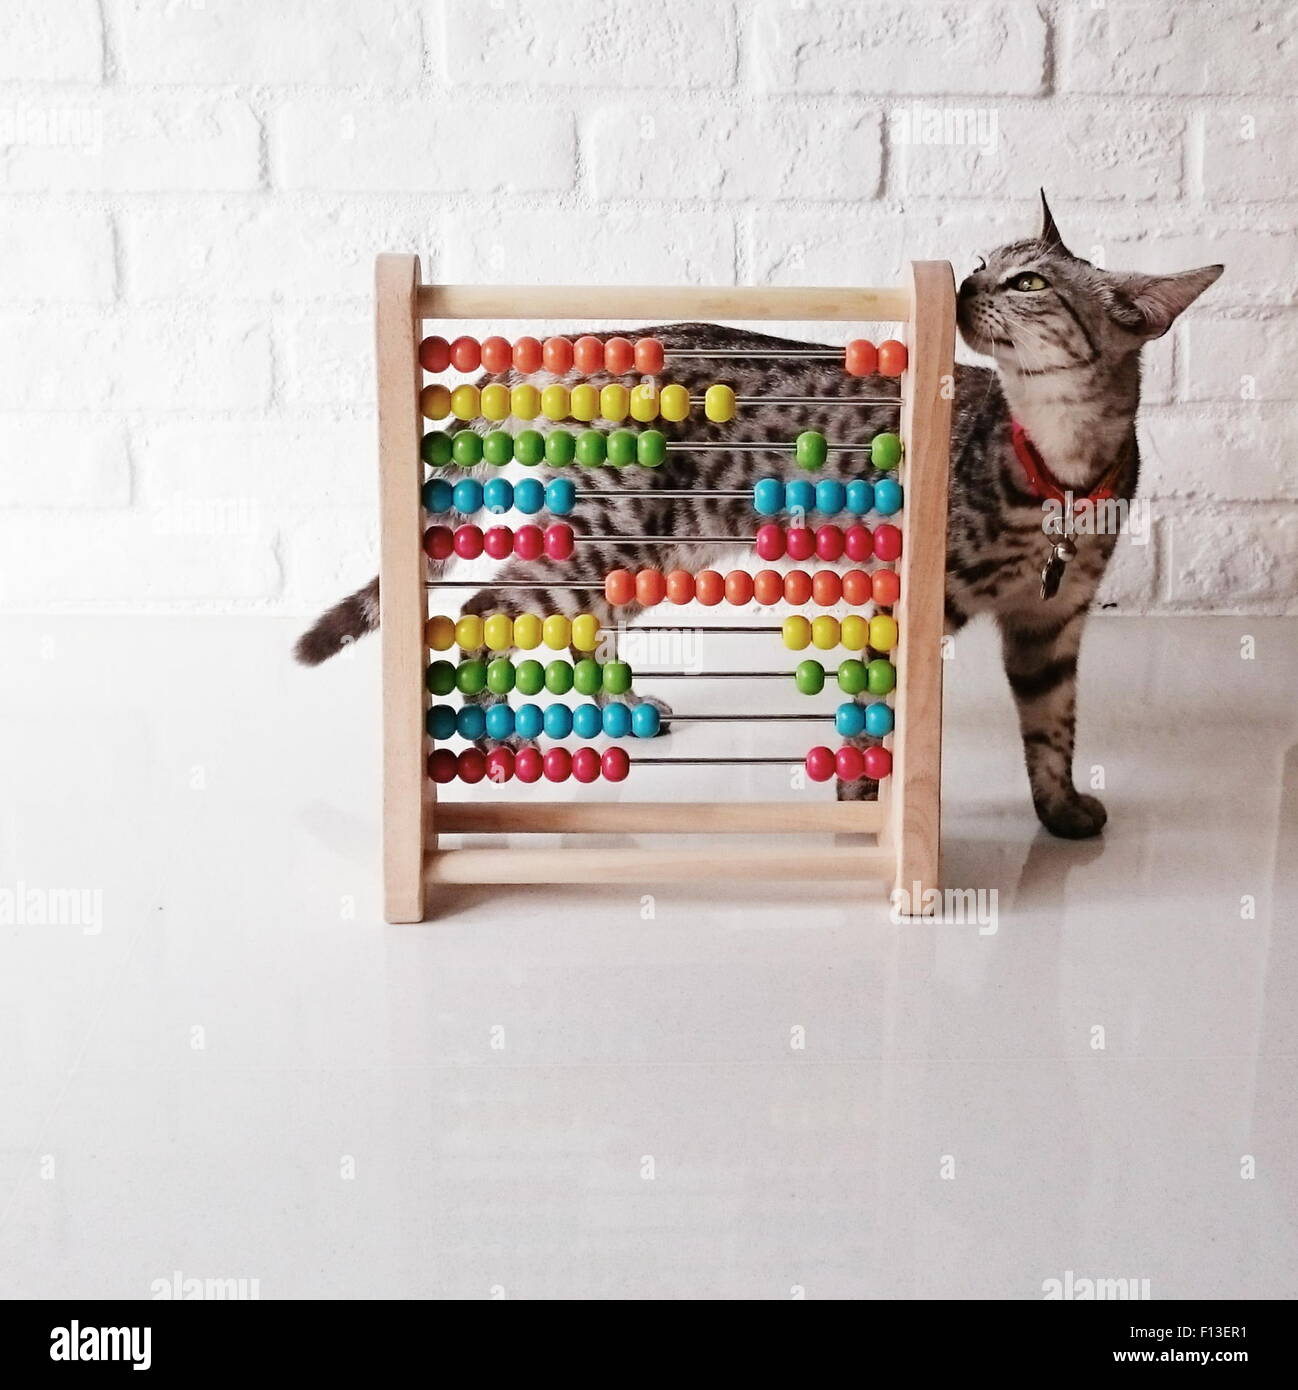 Cat plying with a colorful abacus - Stock Image